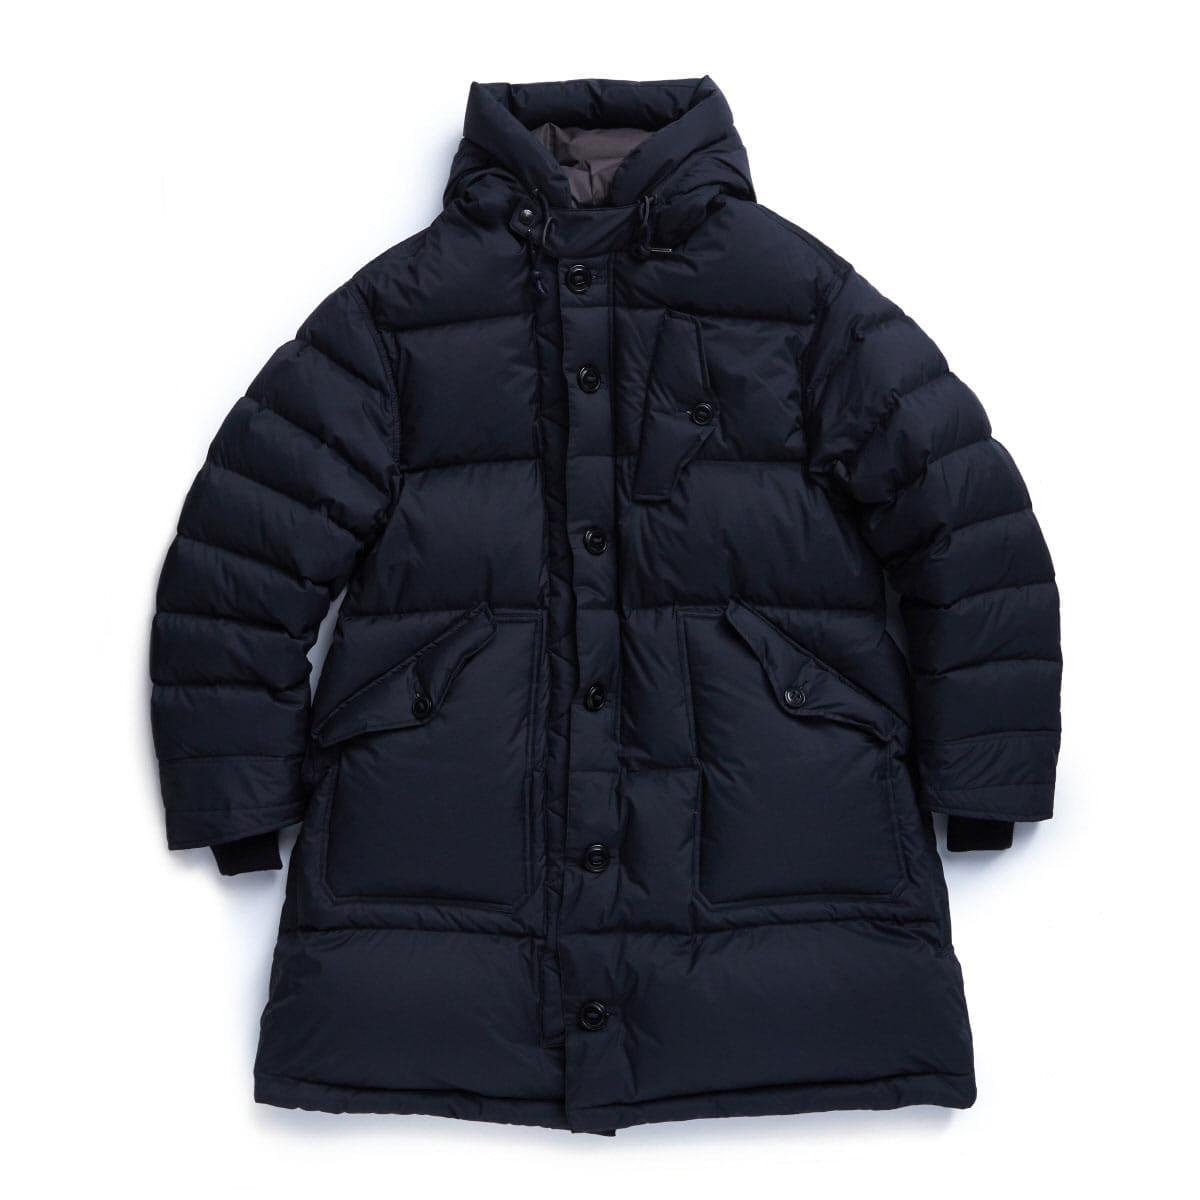 [EASTLOGUE] RAF COLD WEATHER DOWN PARKA 'NAVY SHIELD'